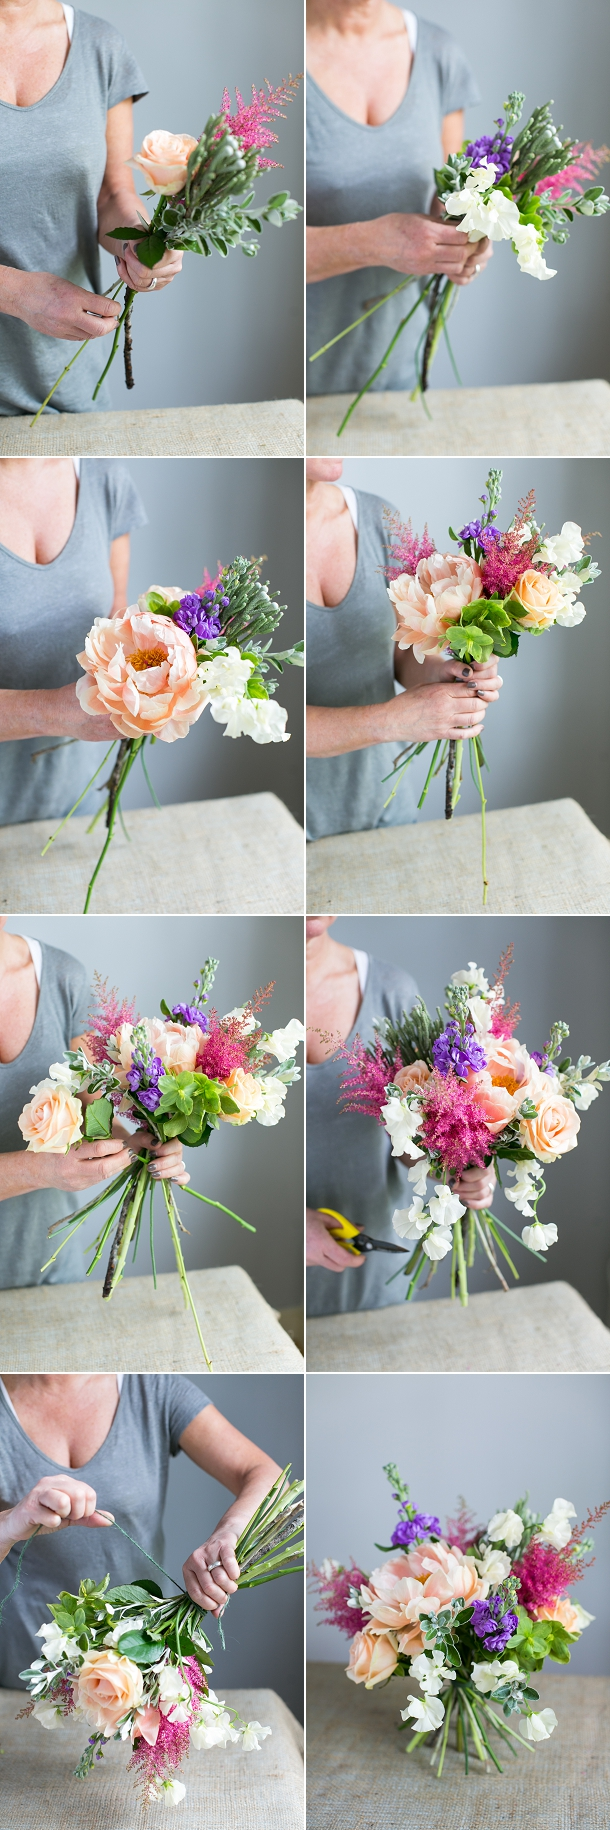 DIY-Floral-Design-Tutorial-Anneli-Marinovich-Photography-9